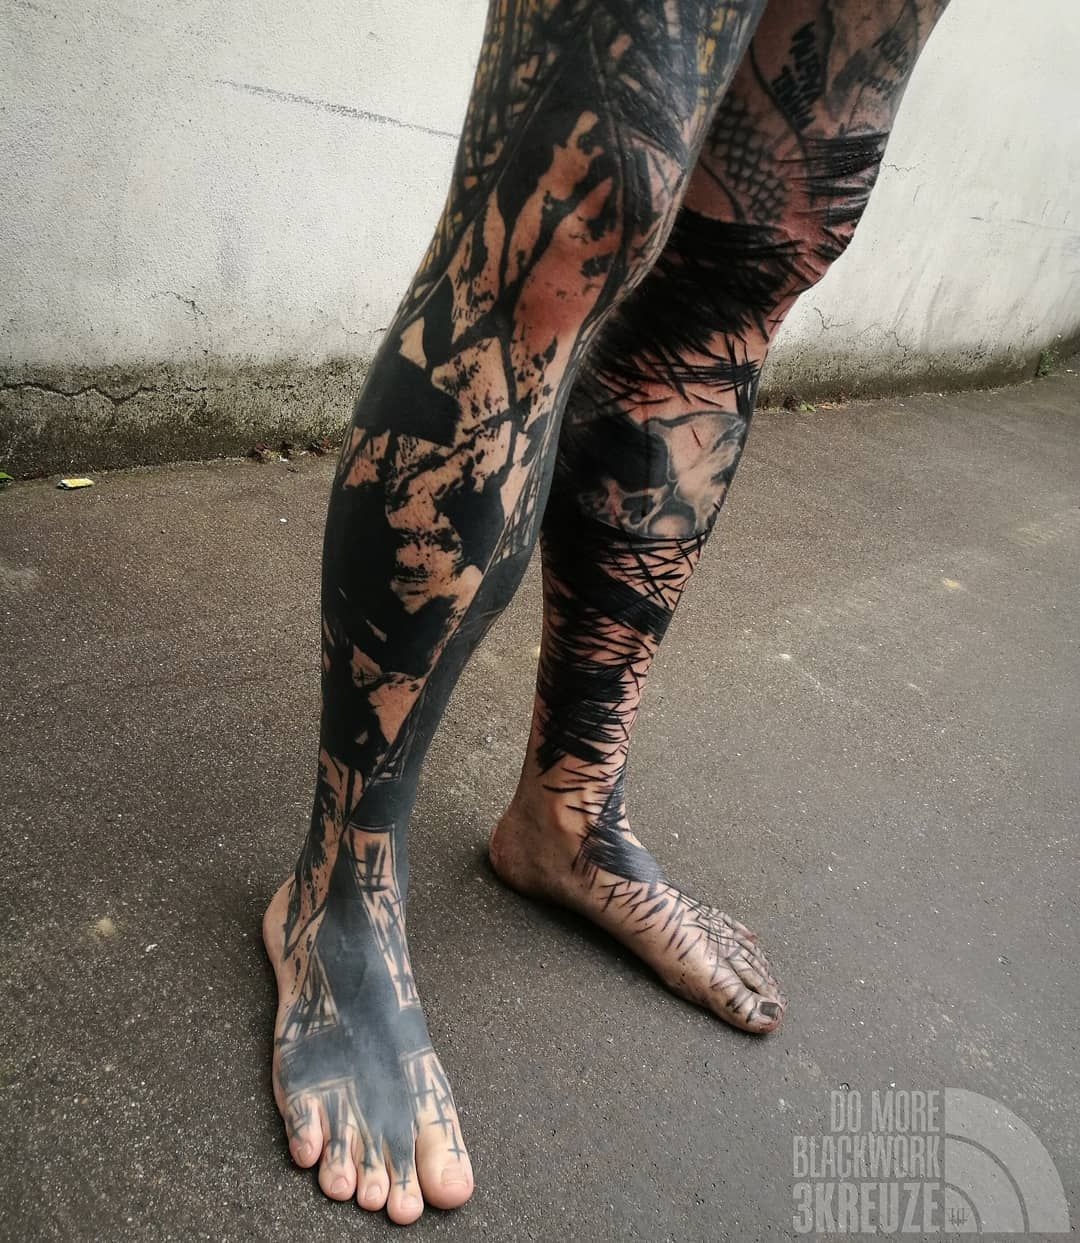 3kreuze S Brutal Heavy Abstract Blackwork Tattoo In 2020 Blackwork Tattoo Blackwork Leg Tattoo Men